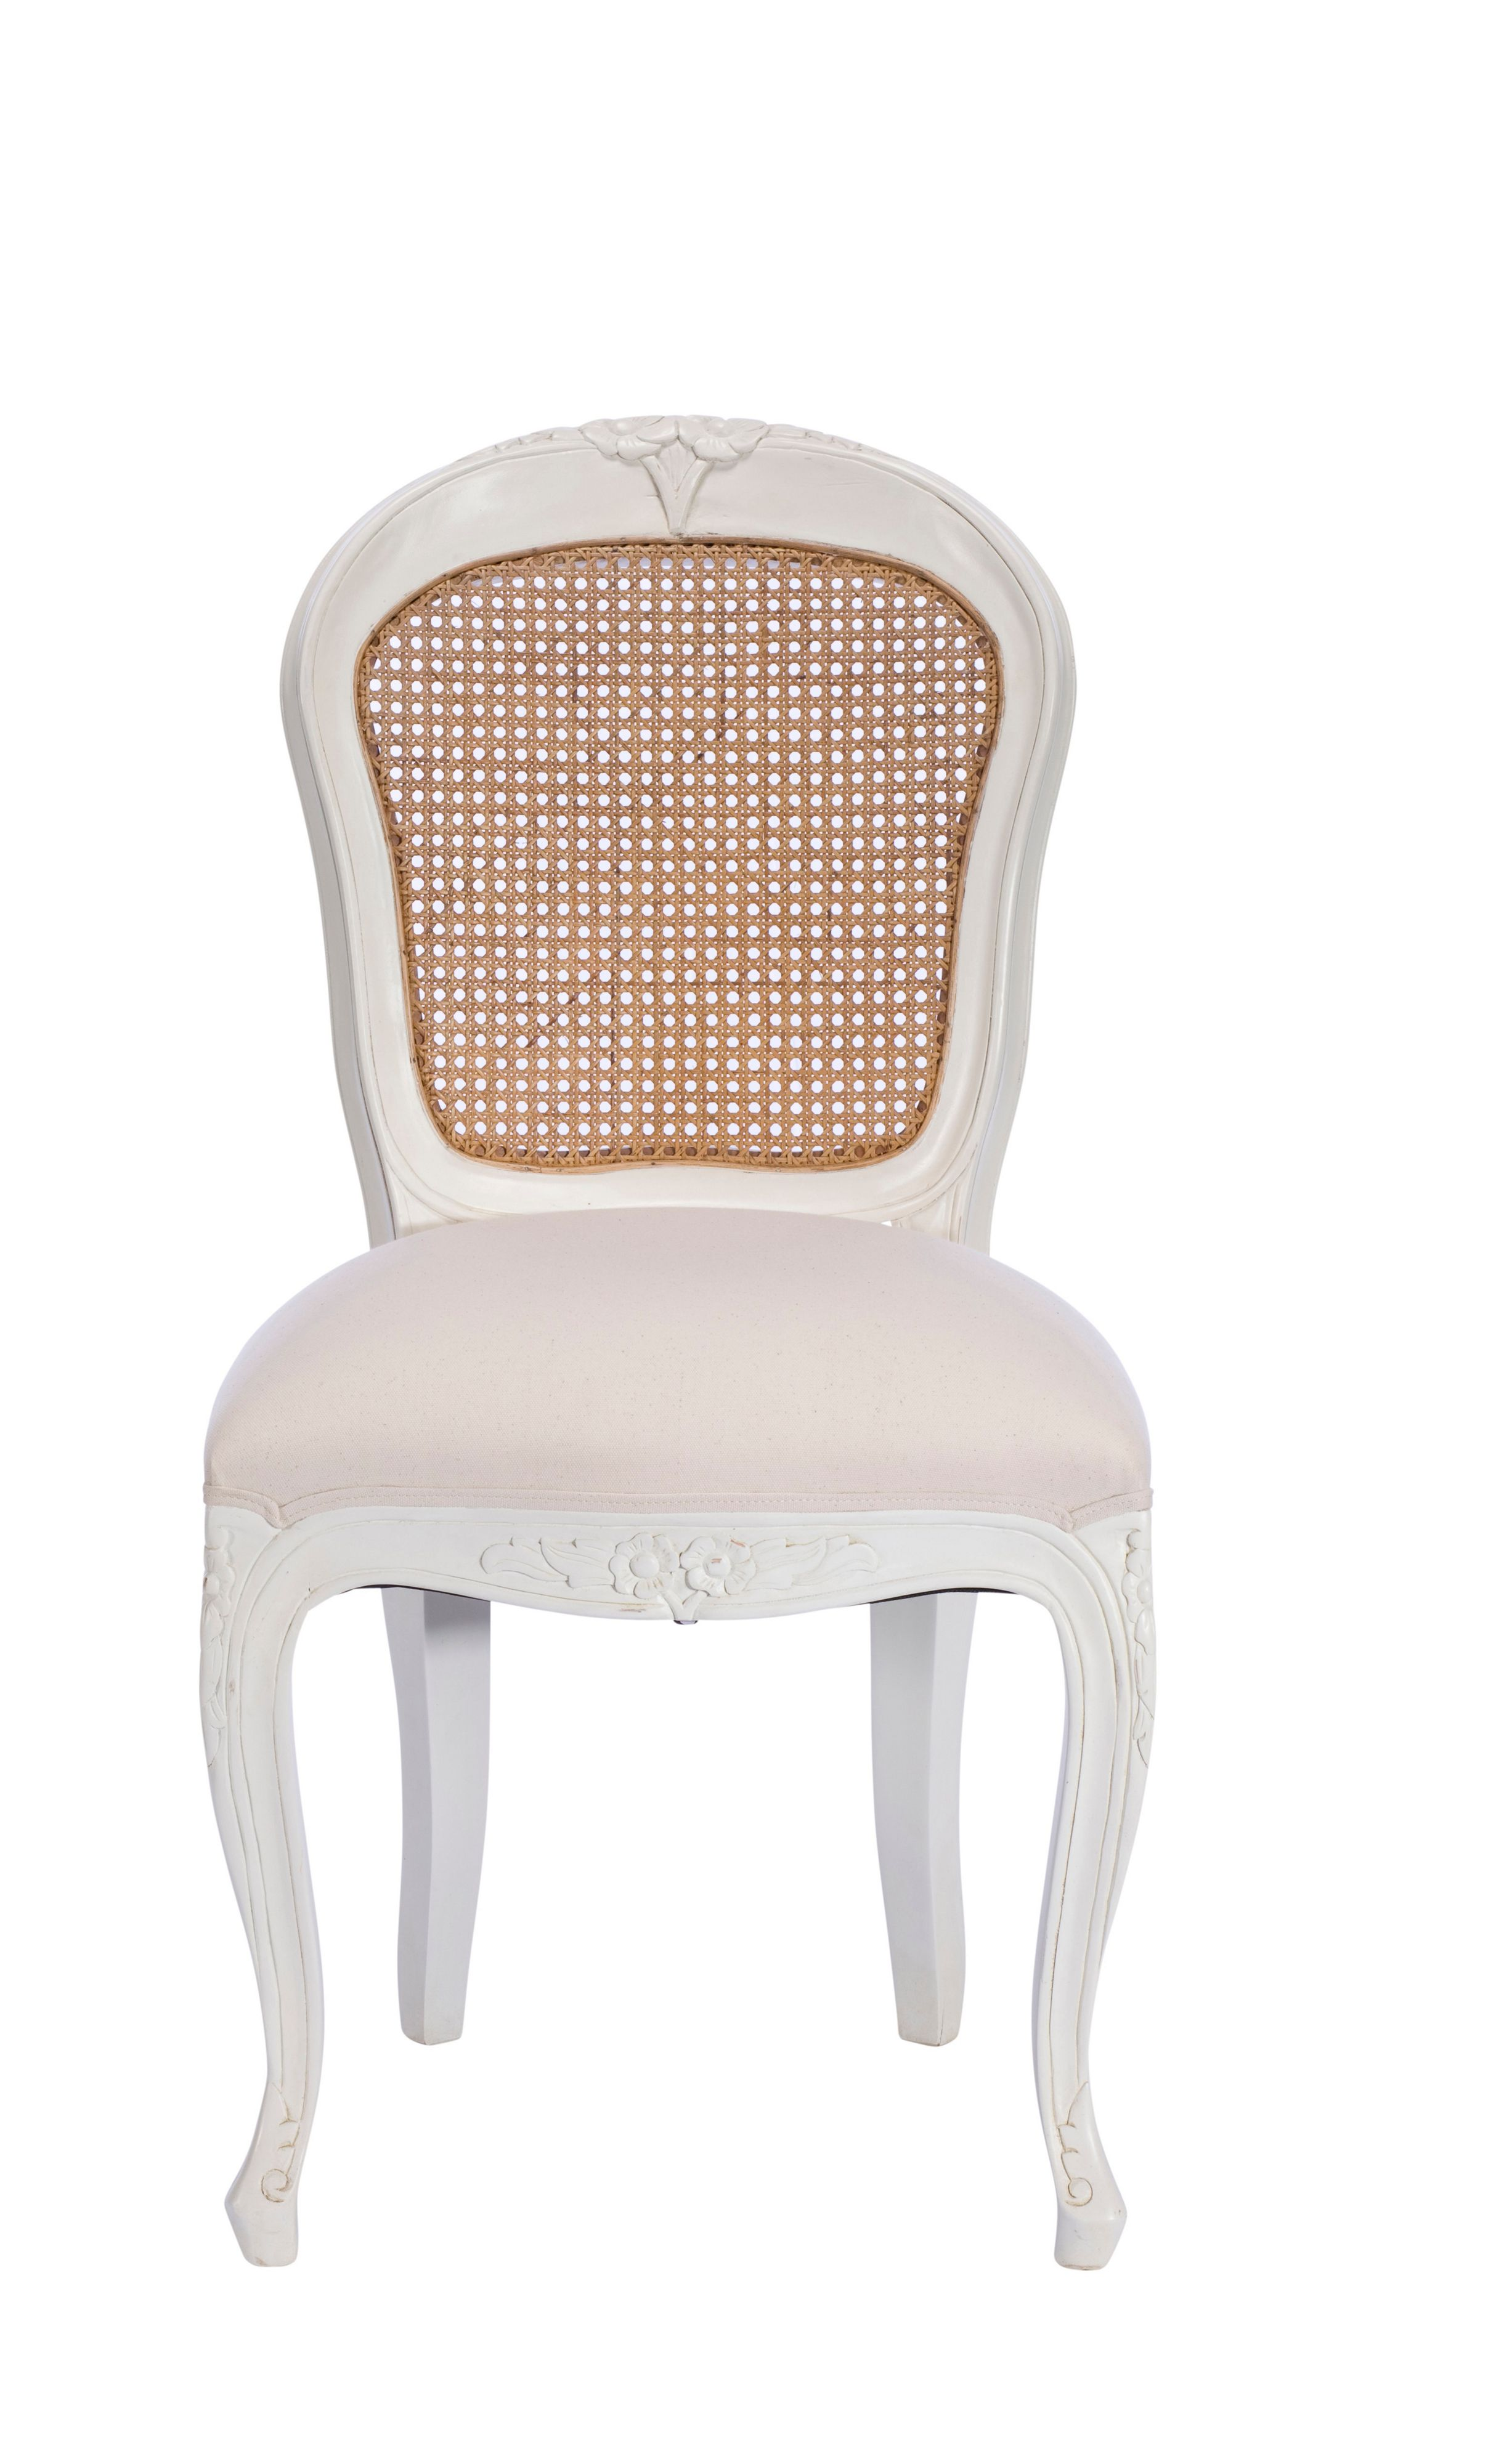 Shabby Chic Shabby Chic Willow II dining chair pair, N/A